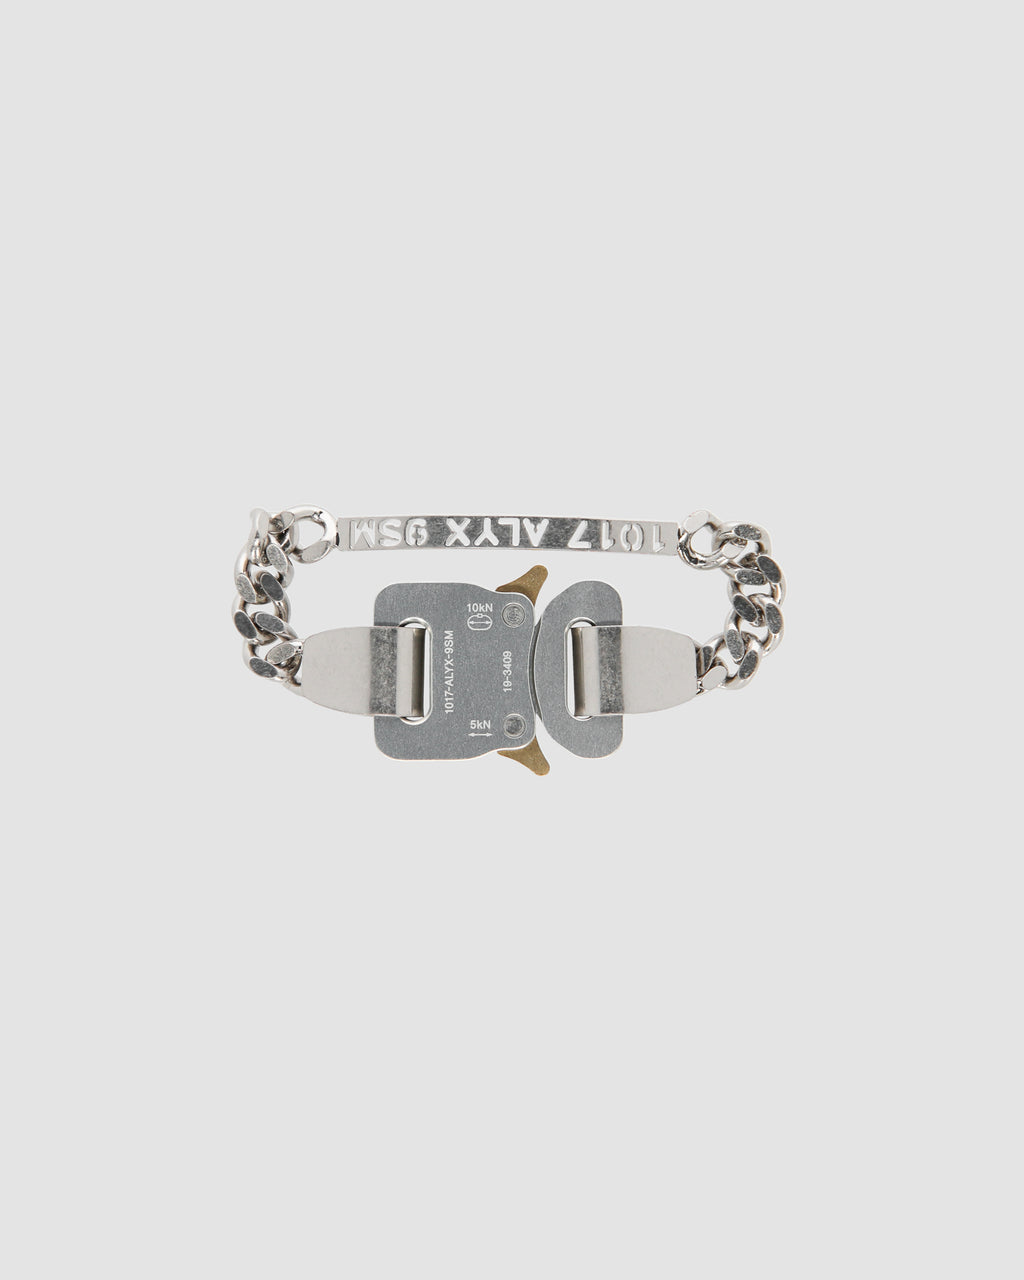 1017 ALYX 9SM | BUCKLE BRACELET | Jewellery | Accessories, Google Shopping, Jewellery, jewelry, Man, S20, S20EXSH, SILVER, UNISEX, Woman